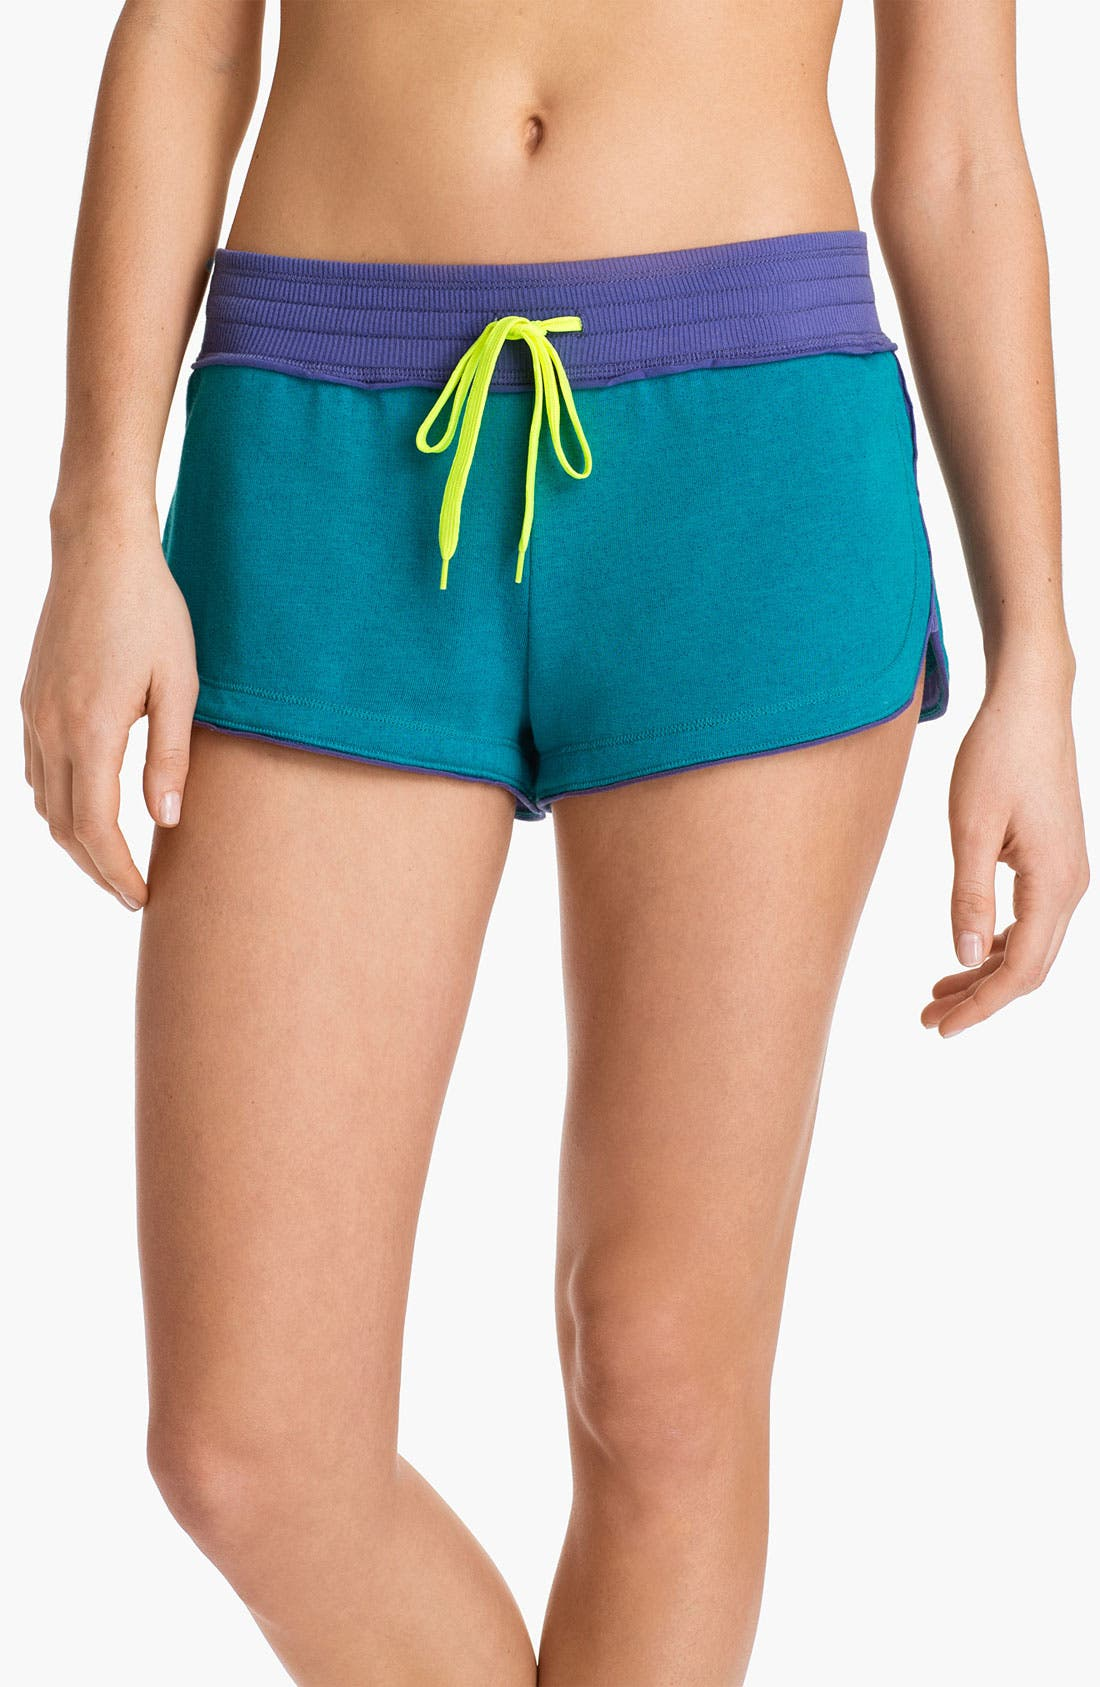 Main Image - Steve Madden 'Earn Your Stripes' Terry Lounge Shorts